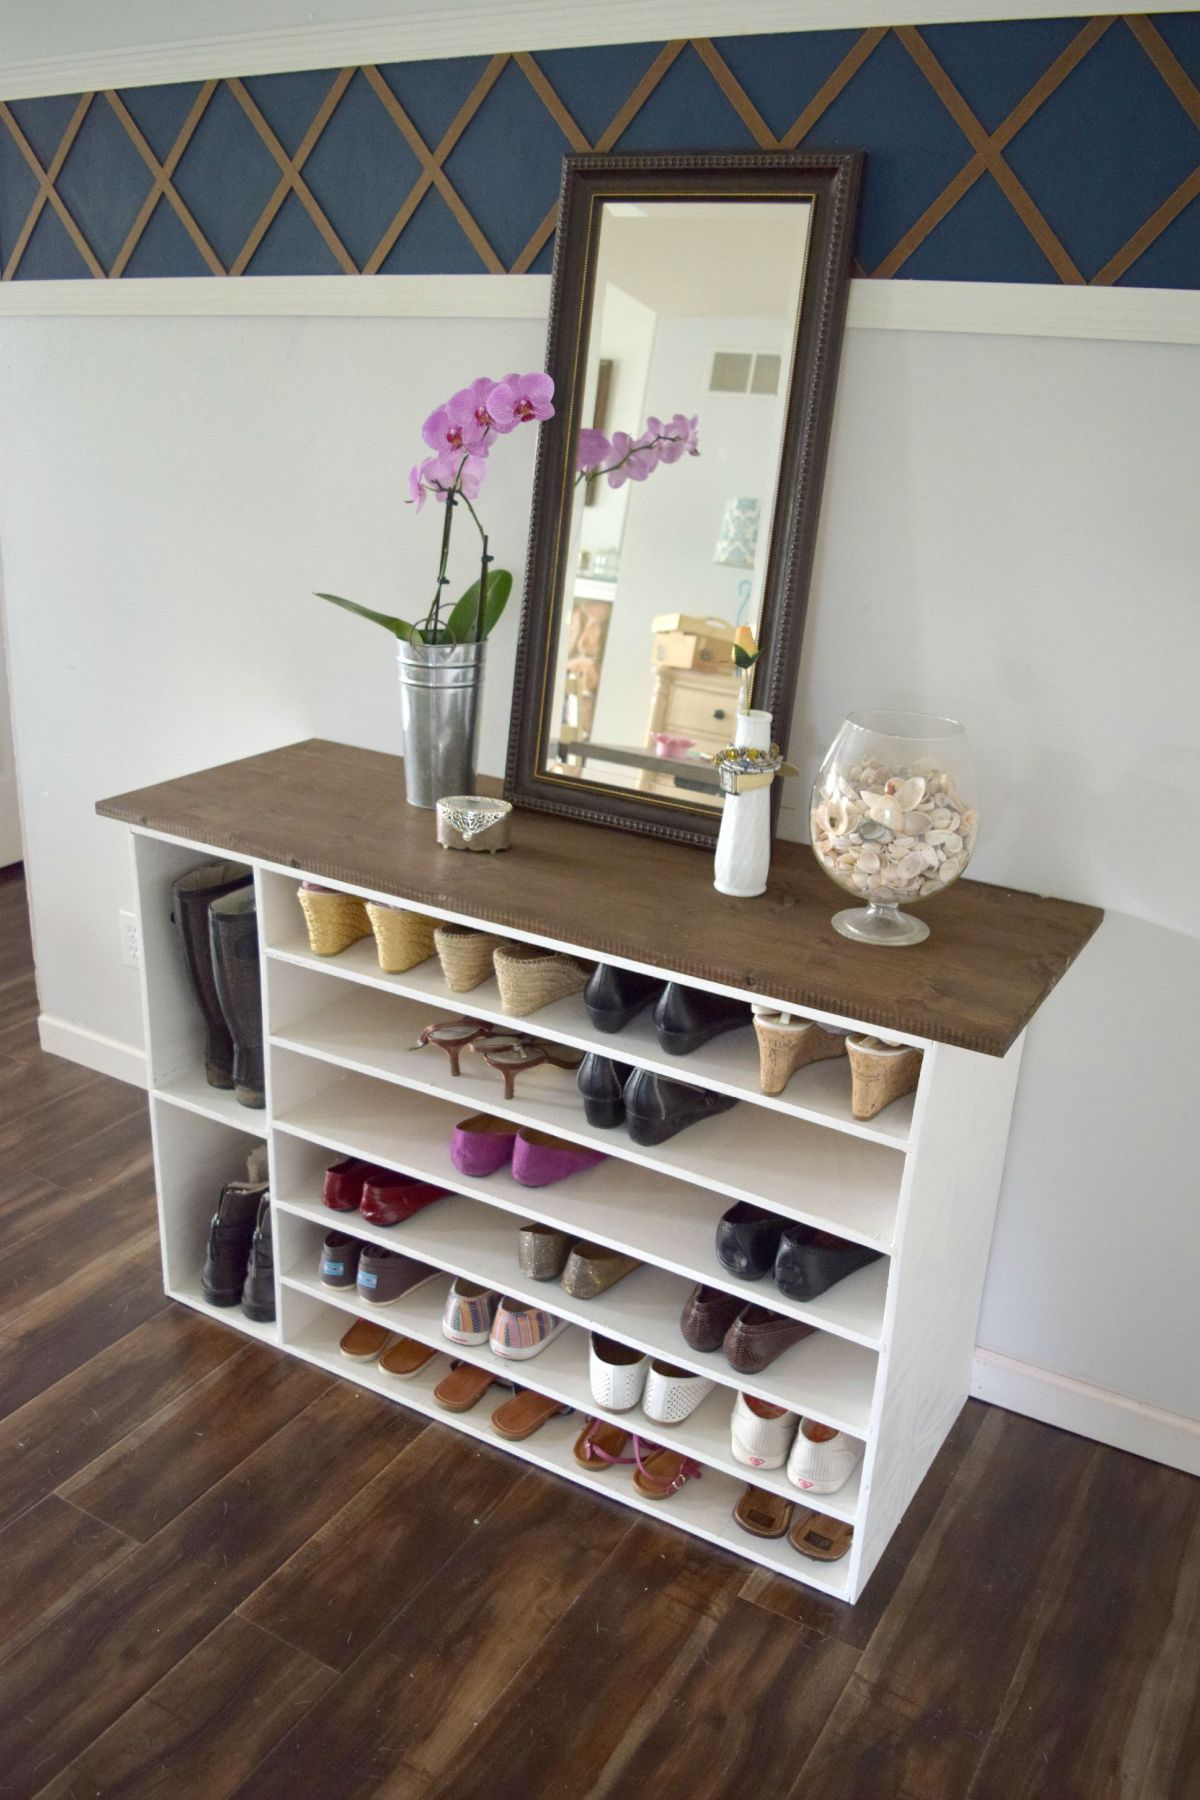 How To Make A Diy Shoe Organizer And Rack For The Closet Diy